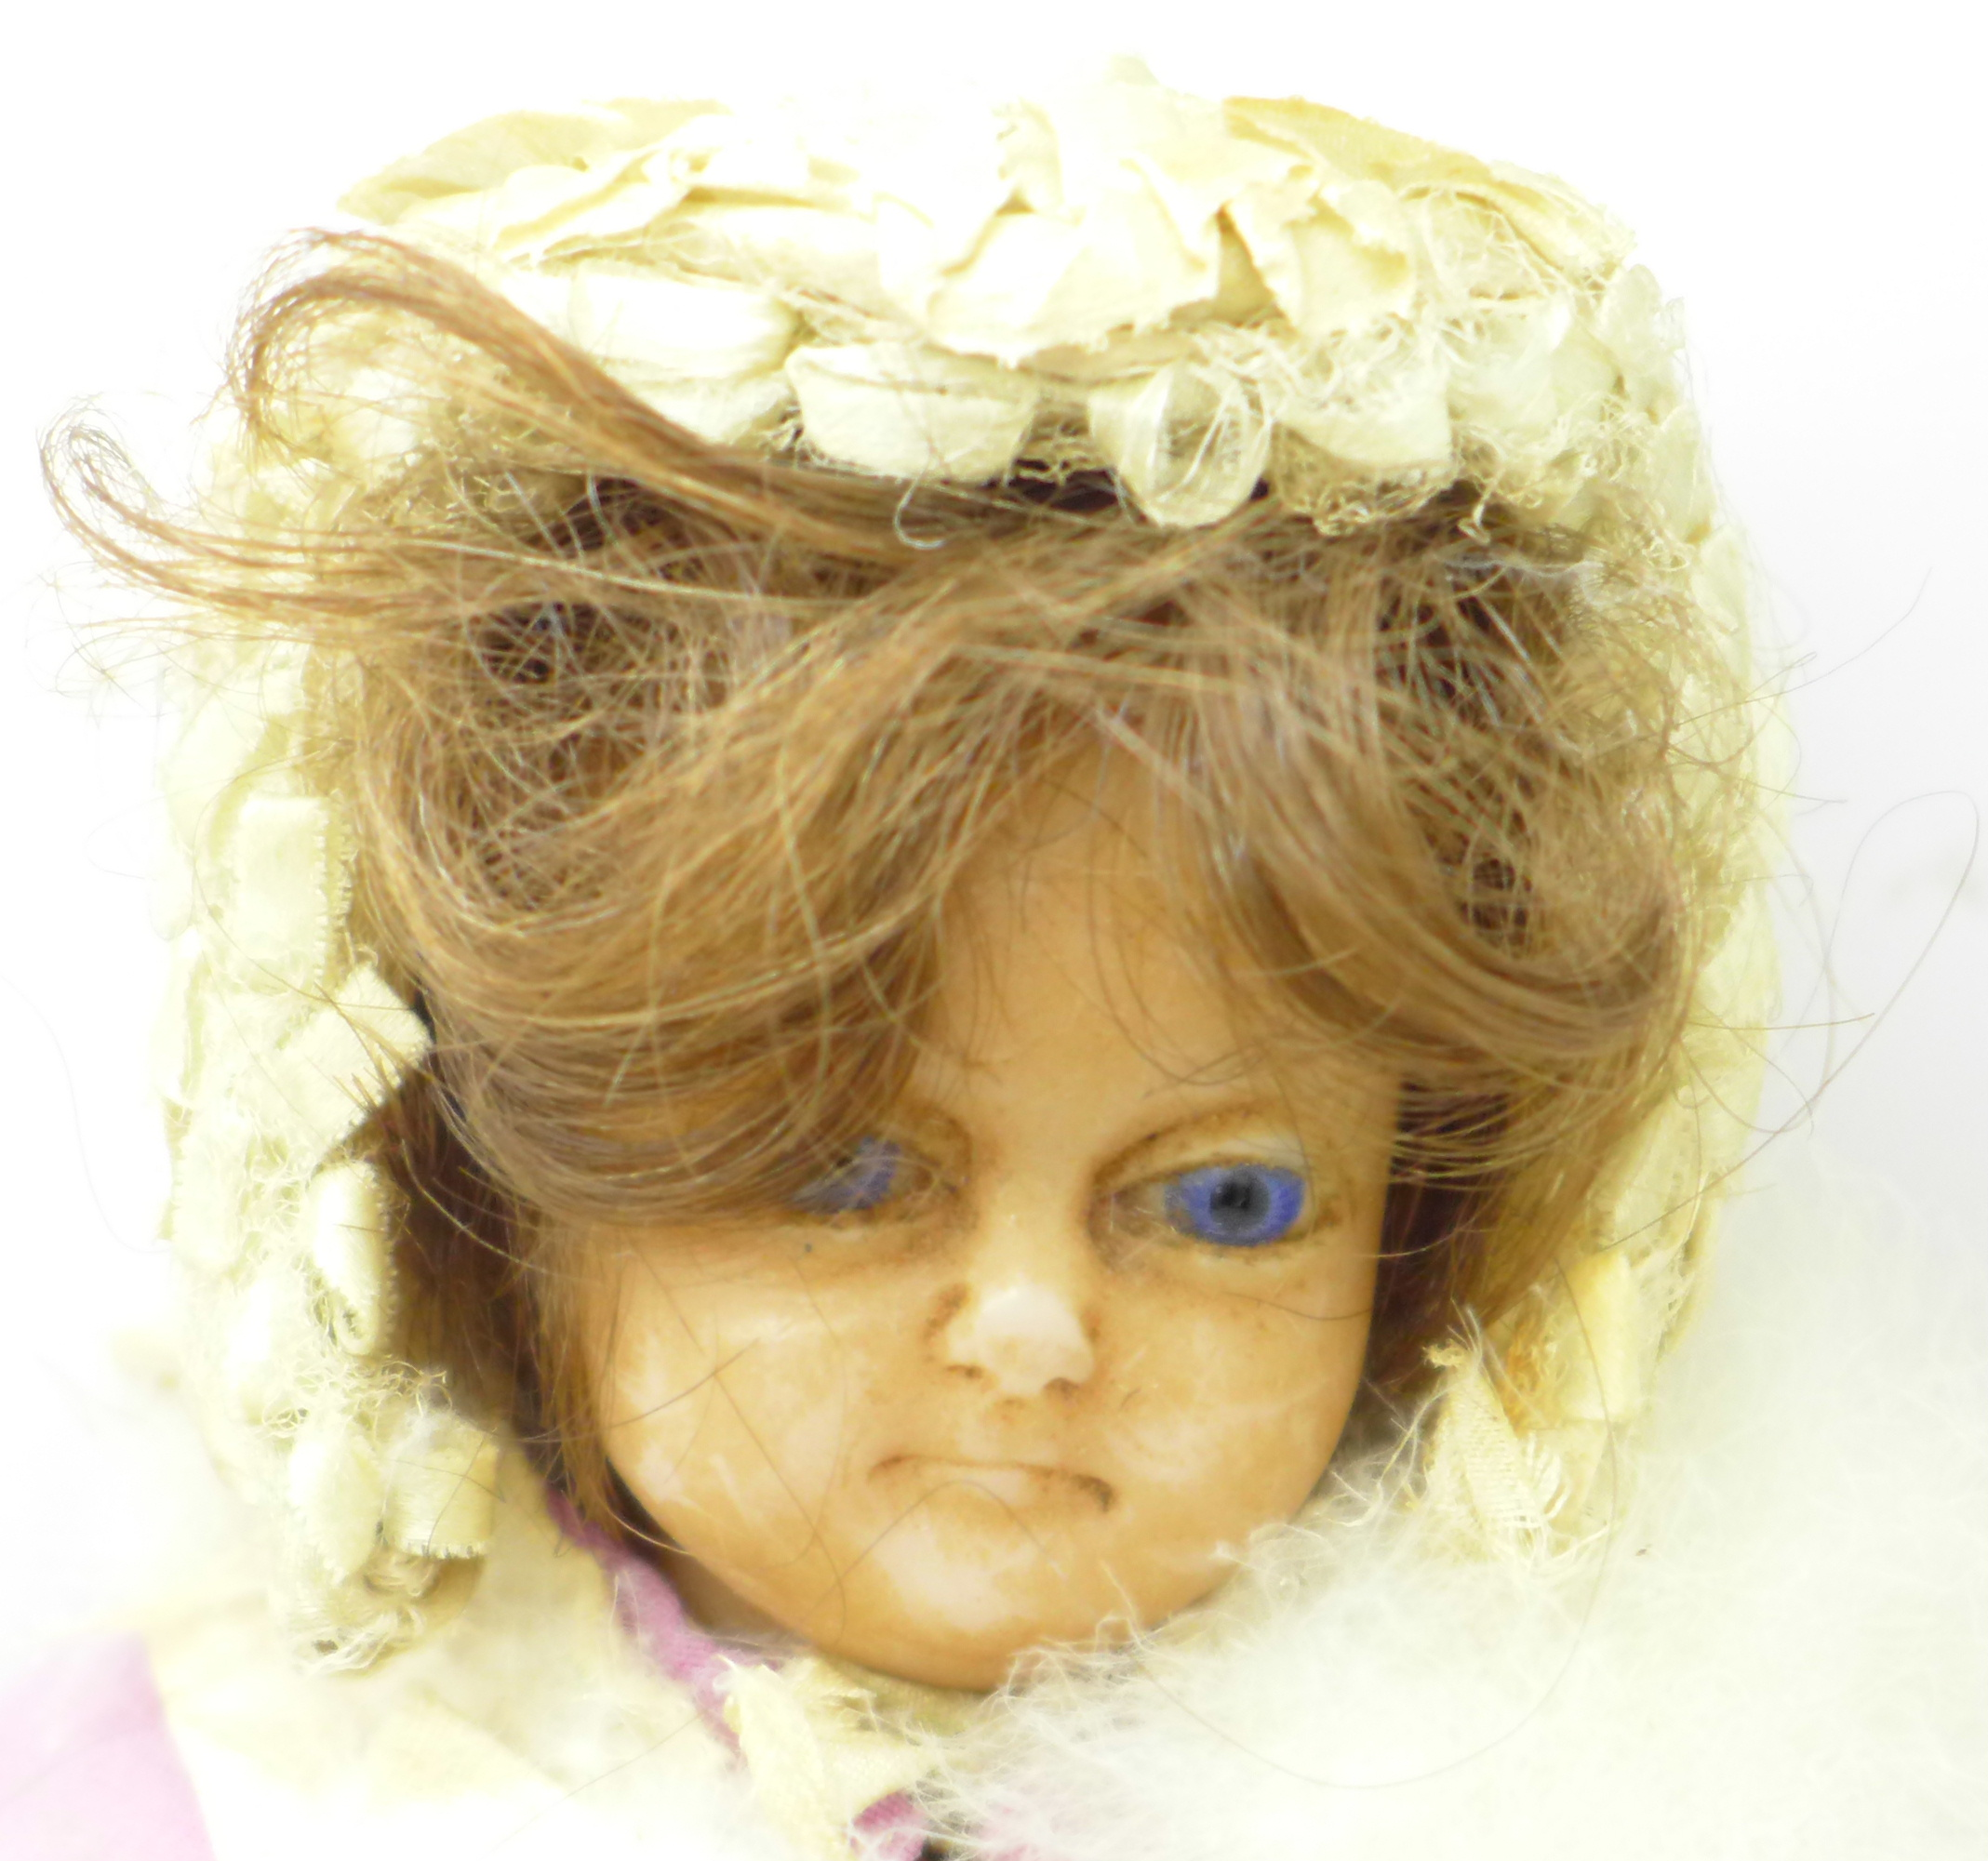 A 19th Century doll with wax head and limbs with bonnet - Image 2 of 3